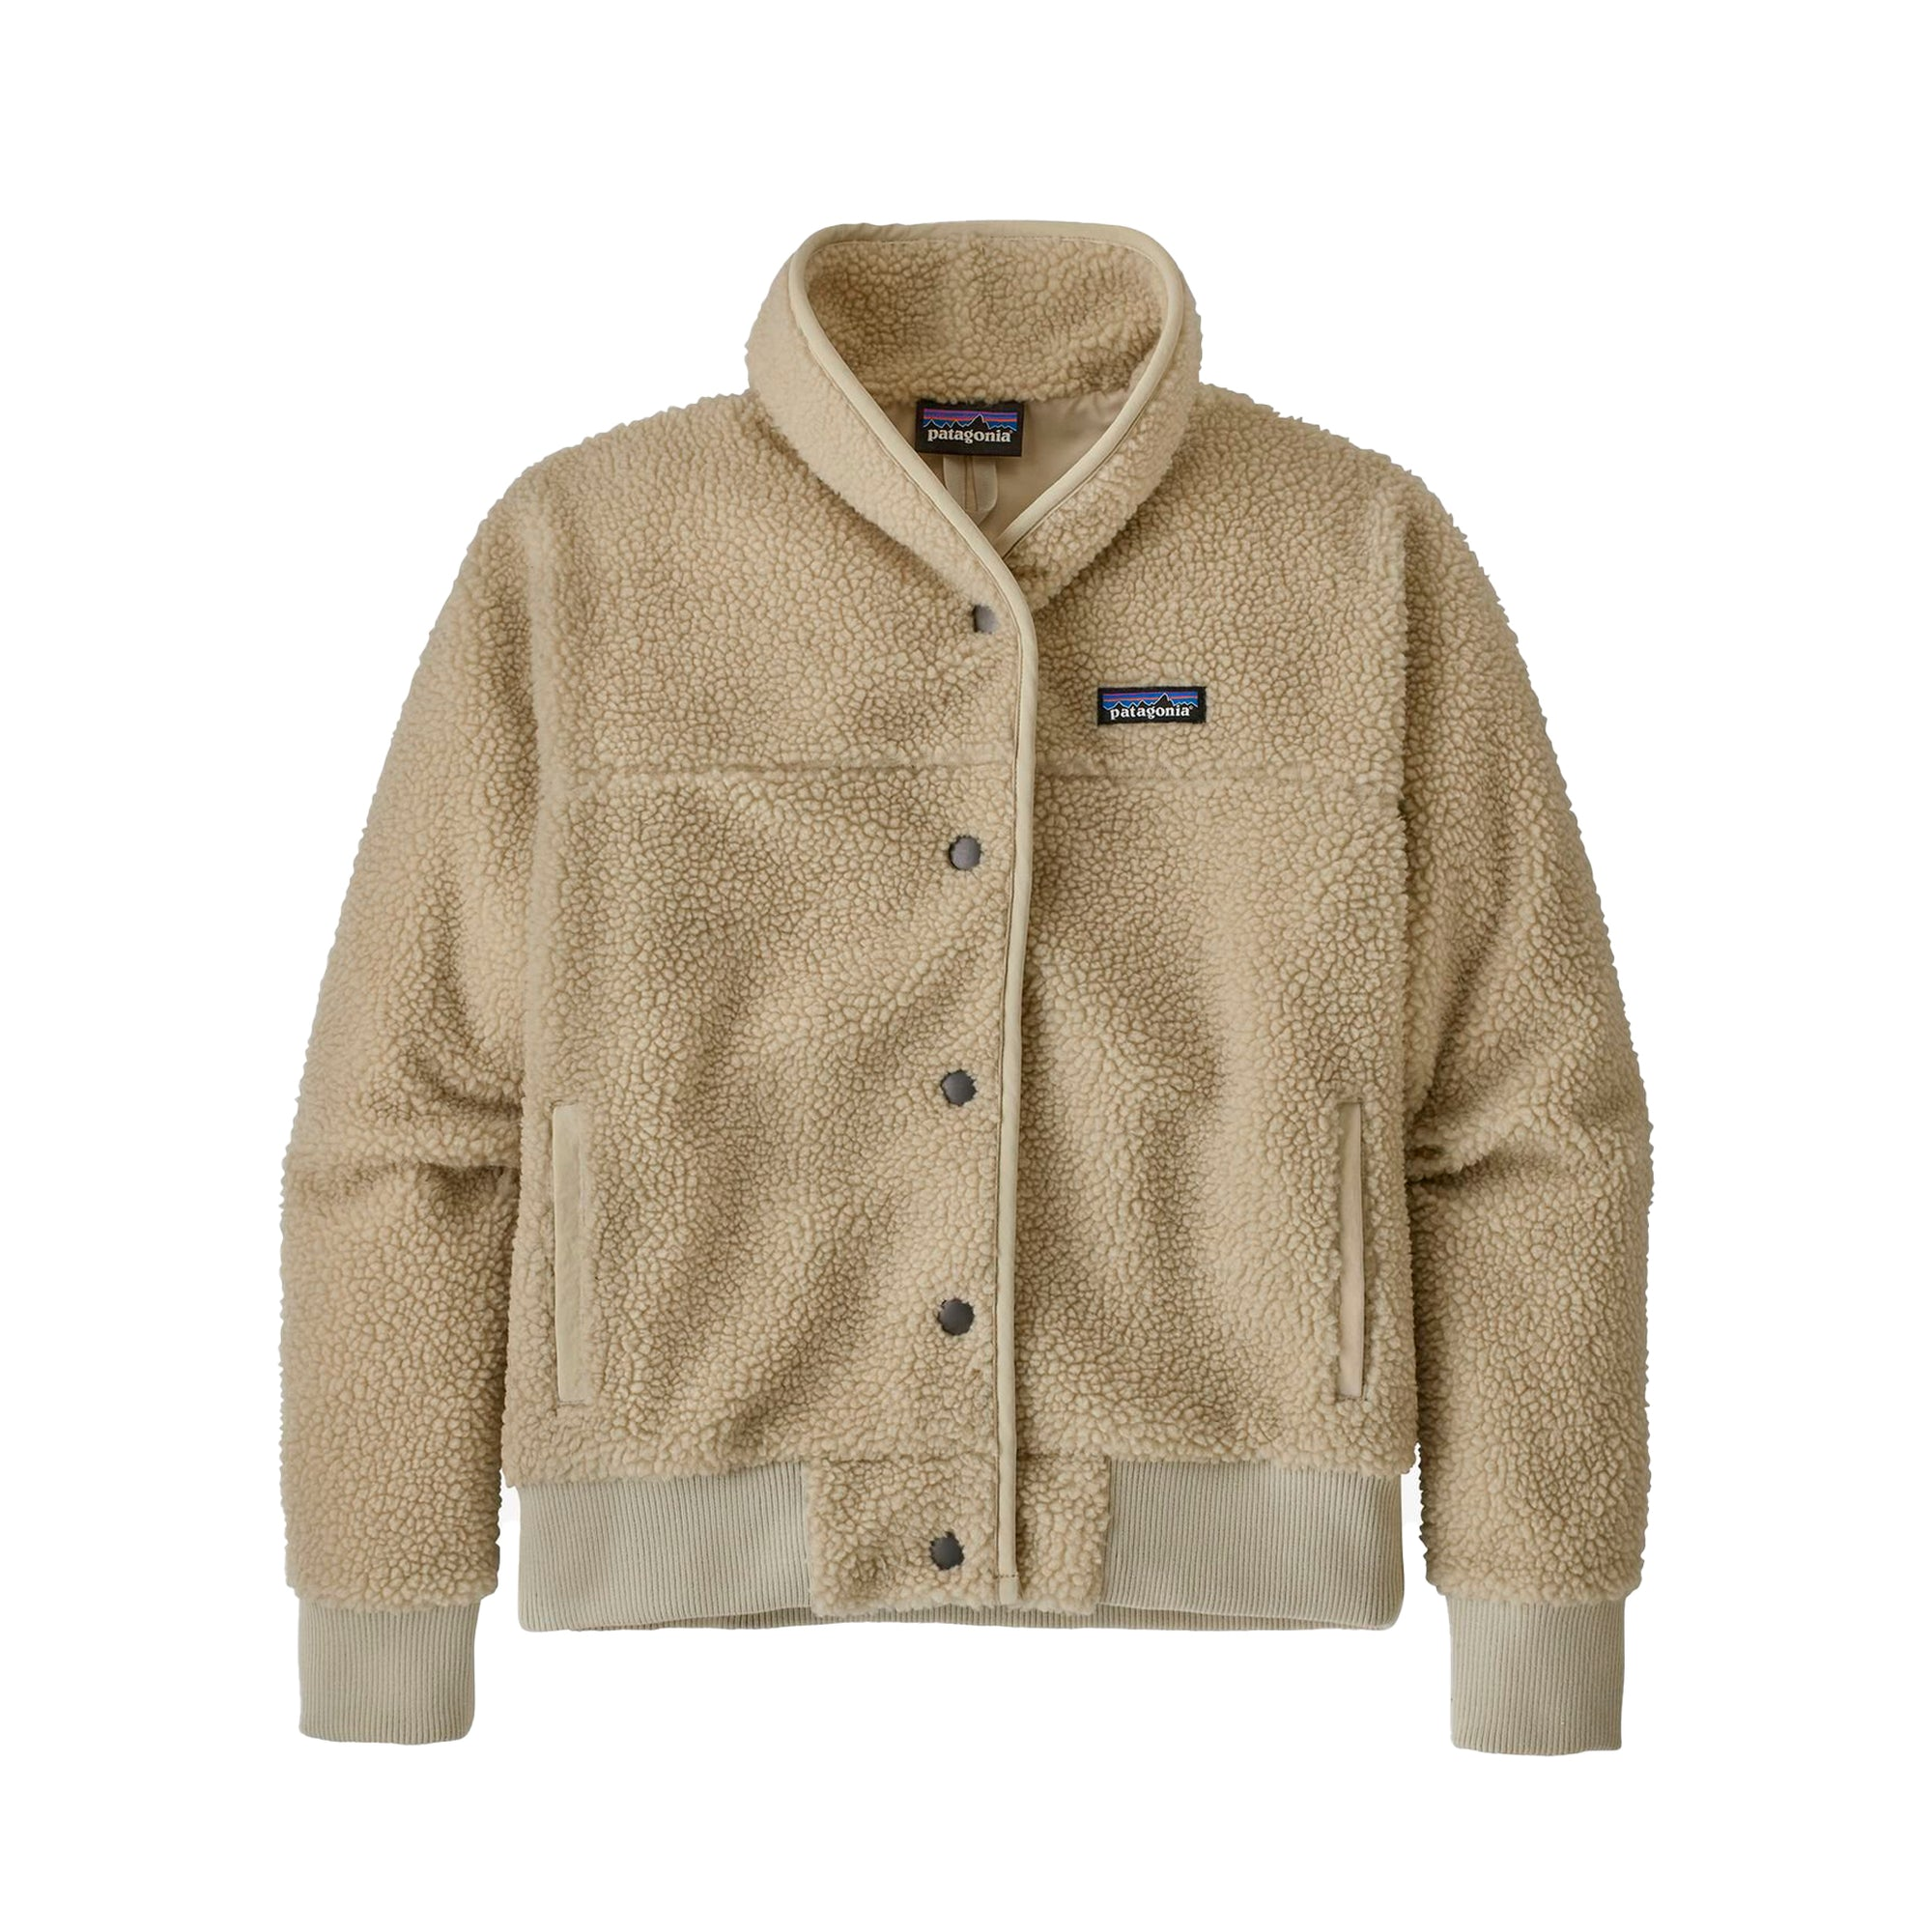 Patagonia Womens Snap Front Retro-x Jacket: Pelican - The Union Project